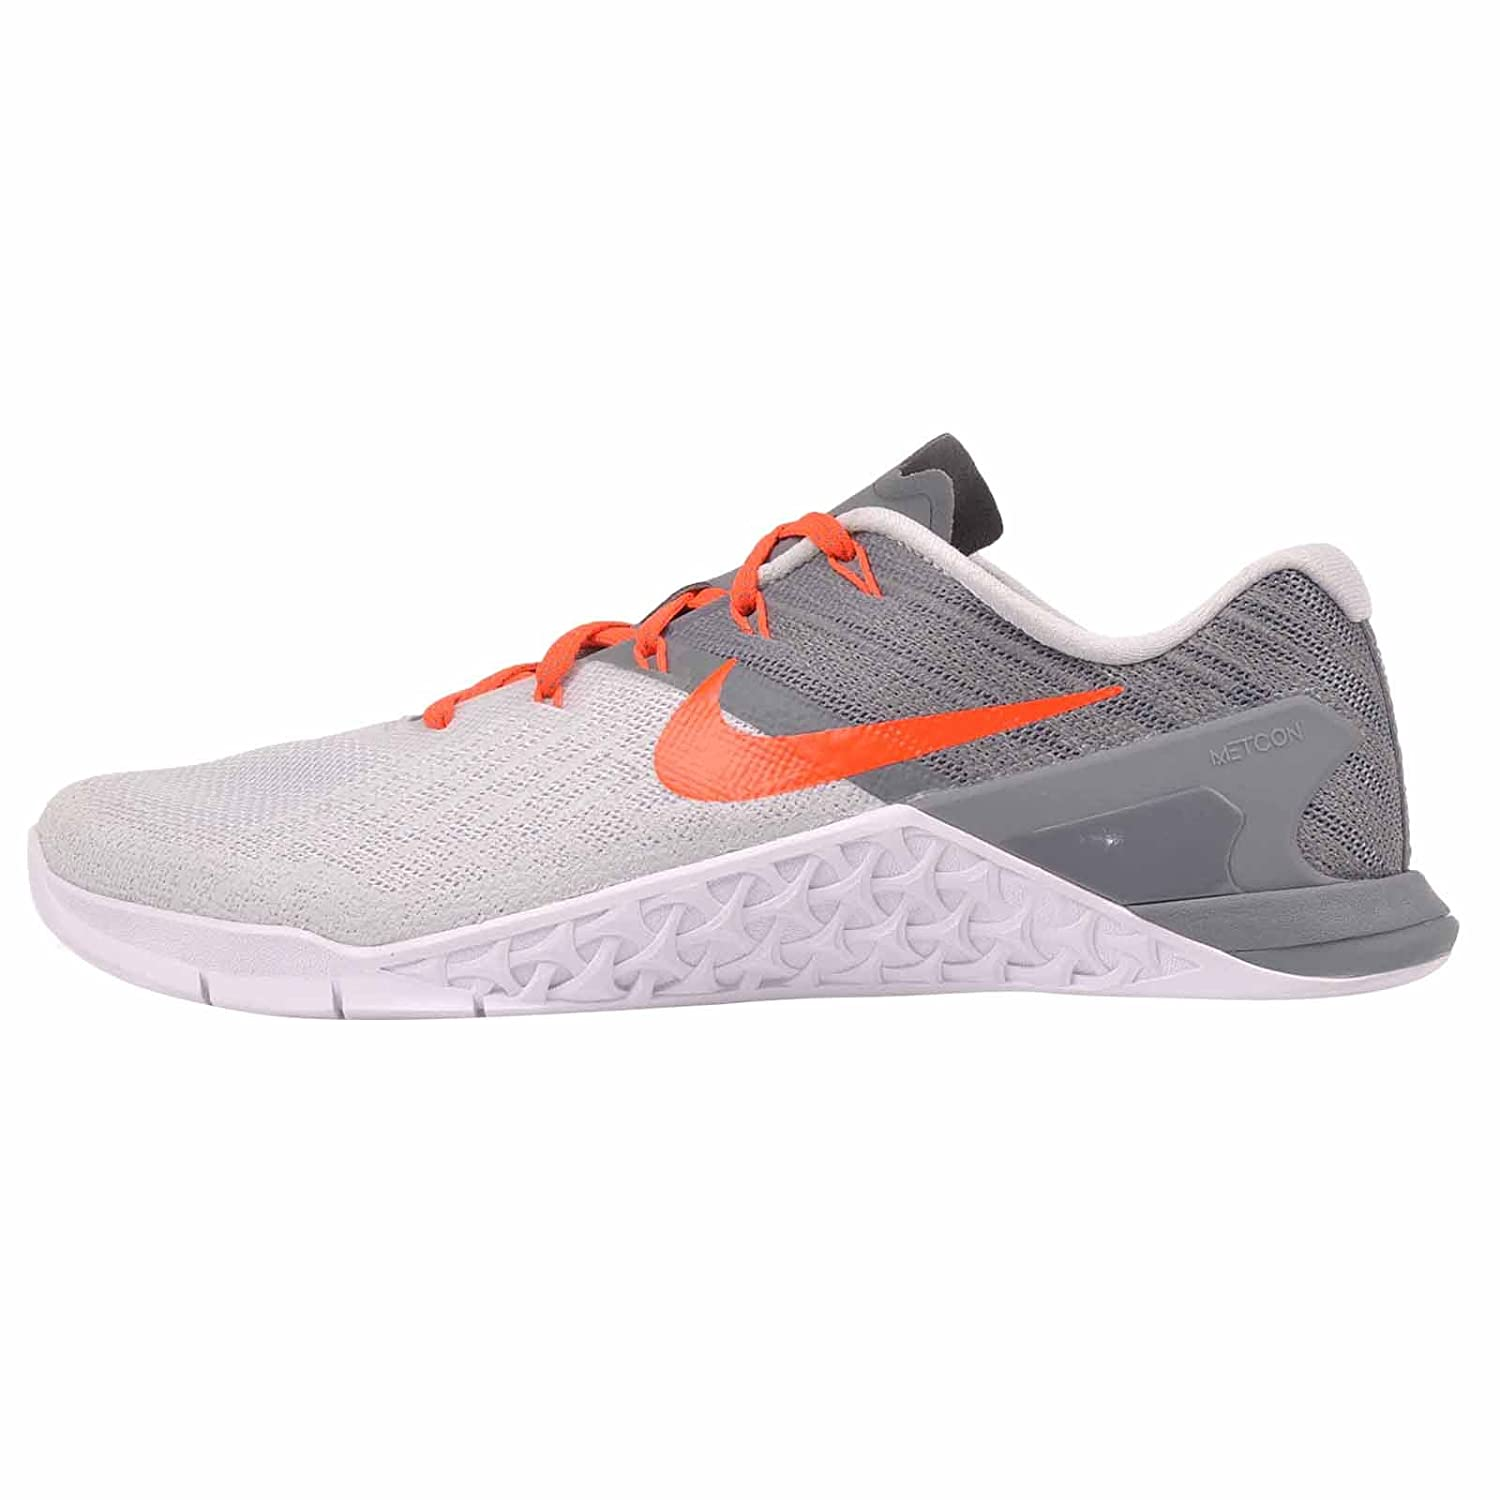 Nike Womens Metcon 3 Training Shoes B01N4FREOM 10 B(M) US|Pure Platinum/Total Crimson